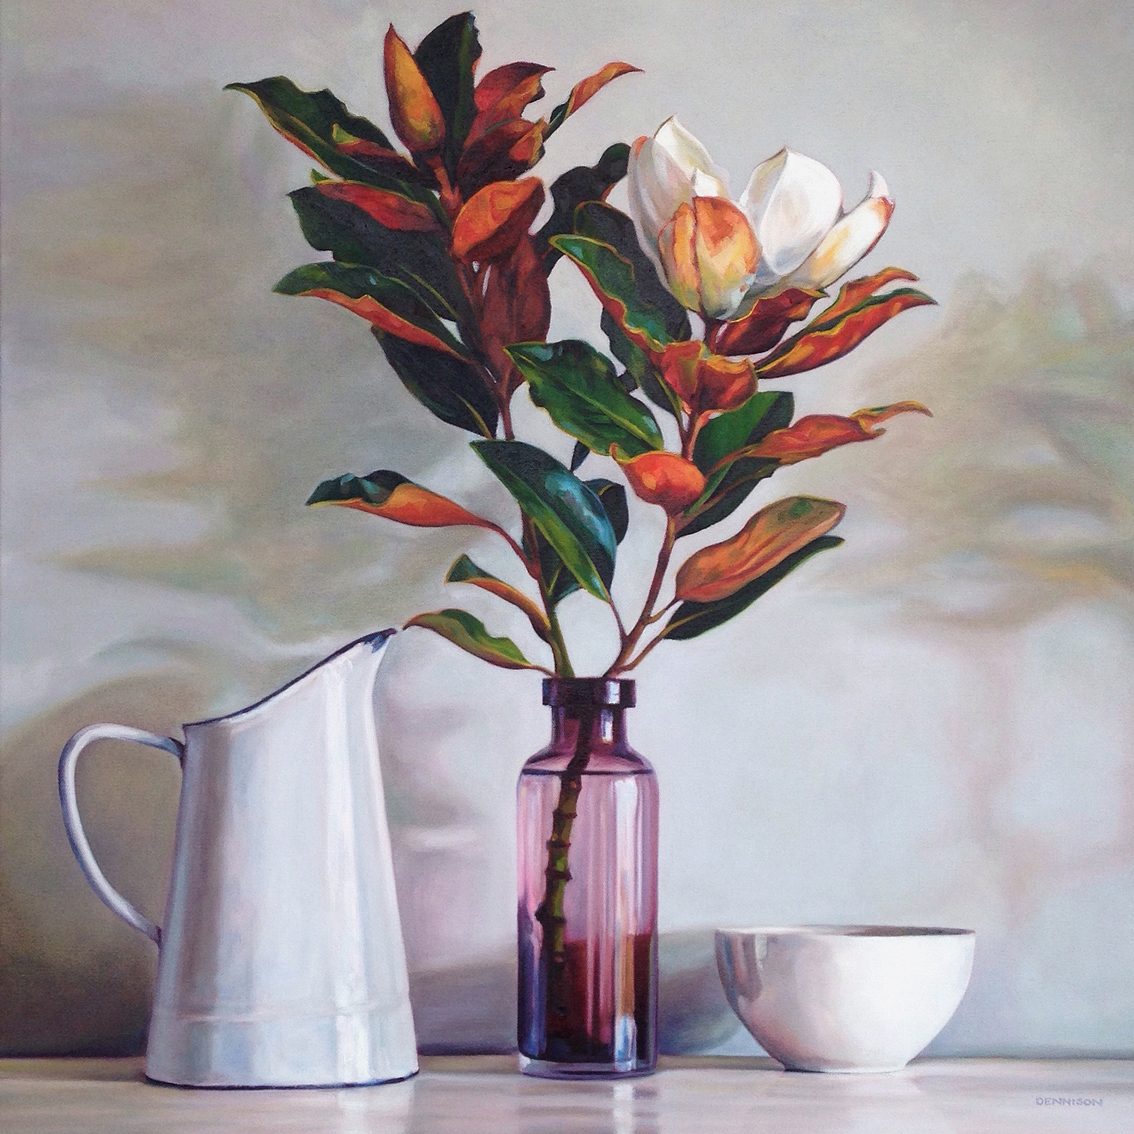 Still Life with White Enamel Jug   Oil on Canvas, 61cm x 61cm